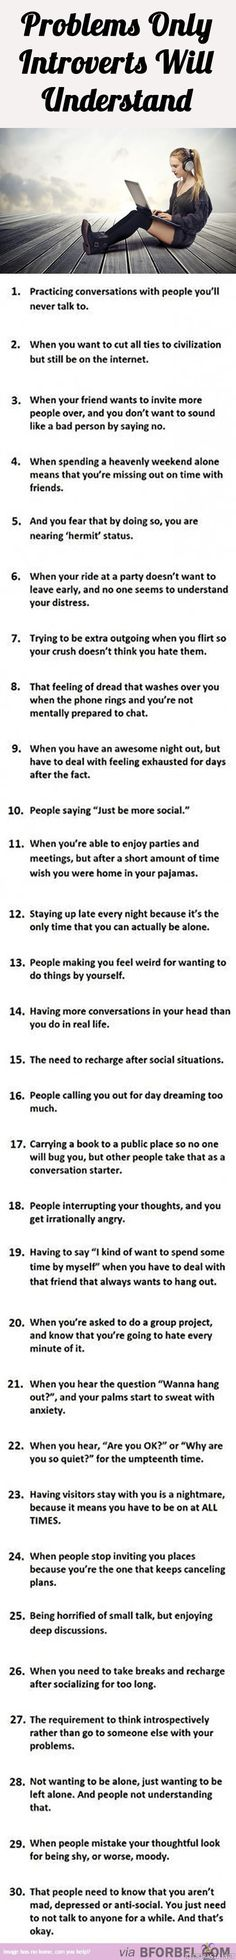 introverts problems #justintrovertthings